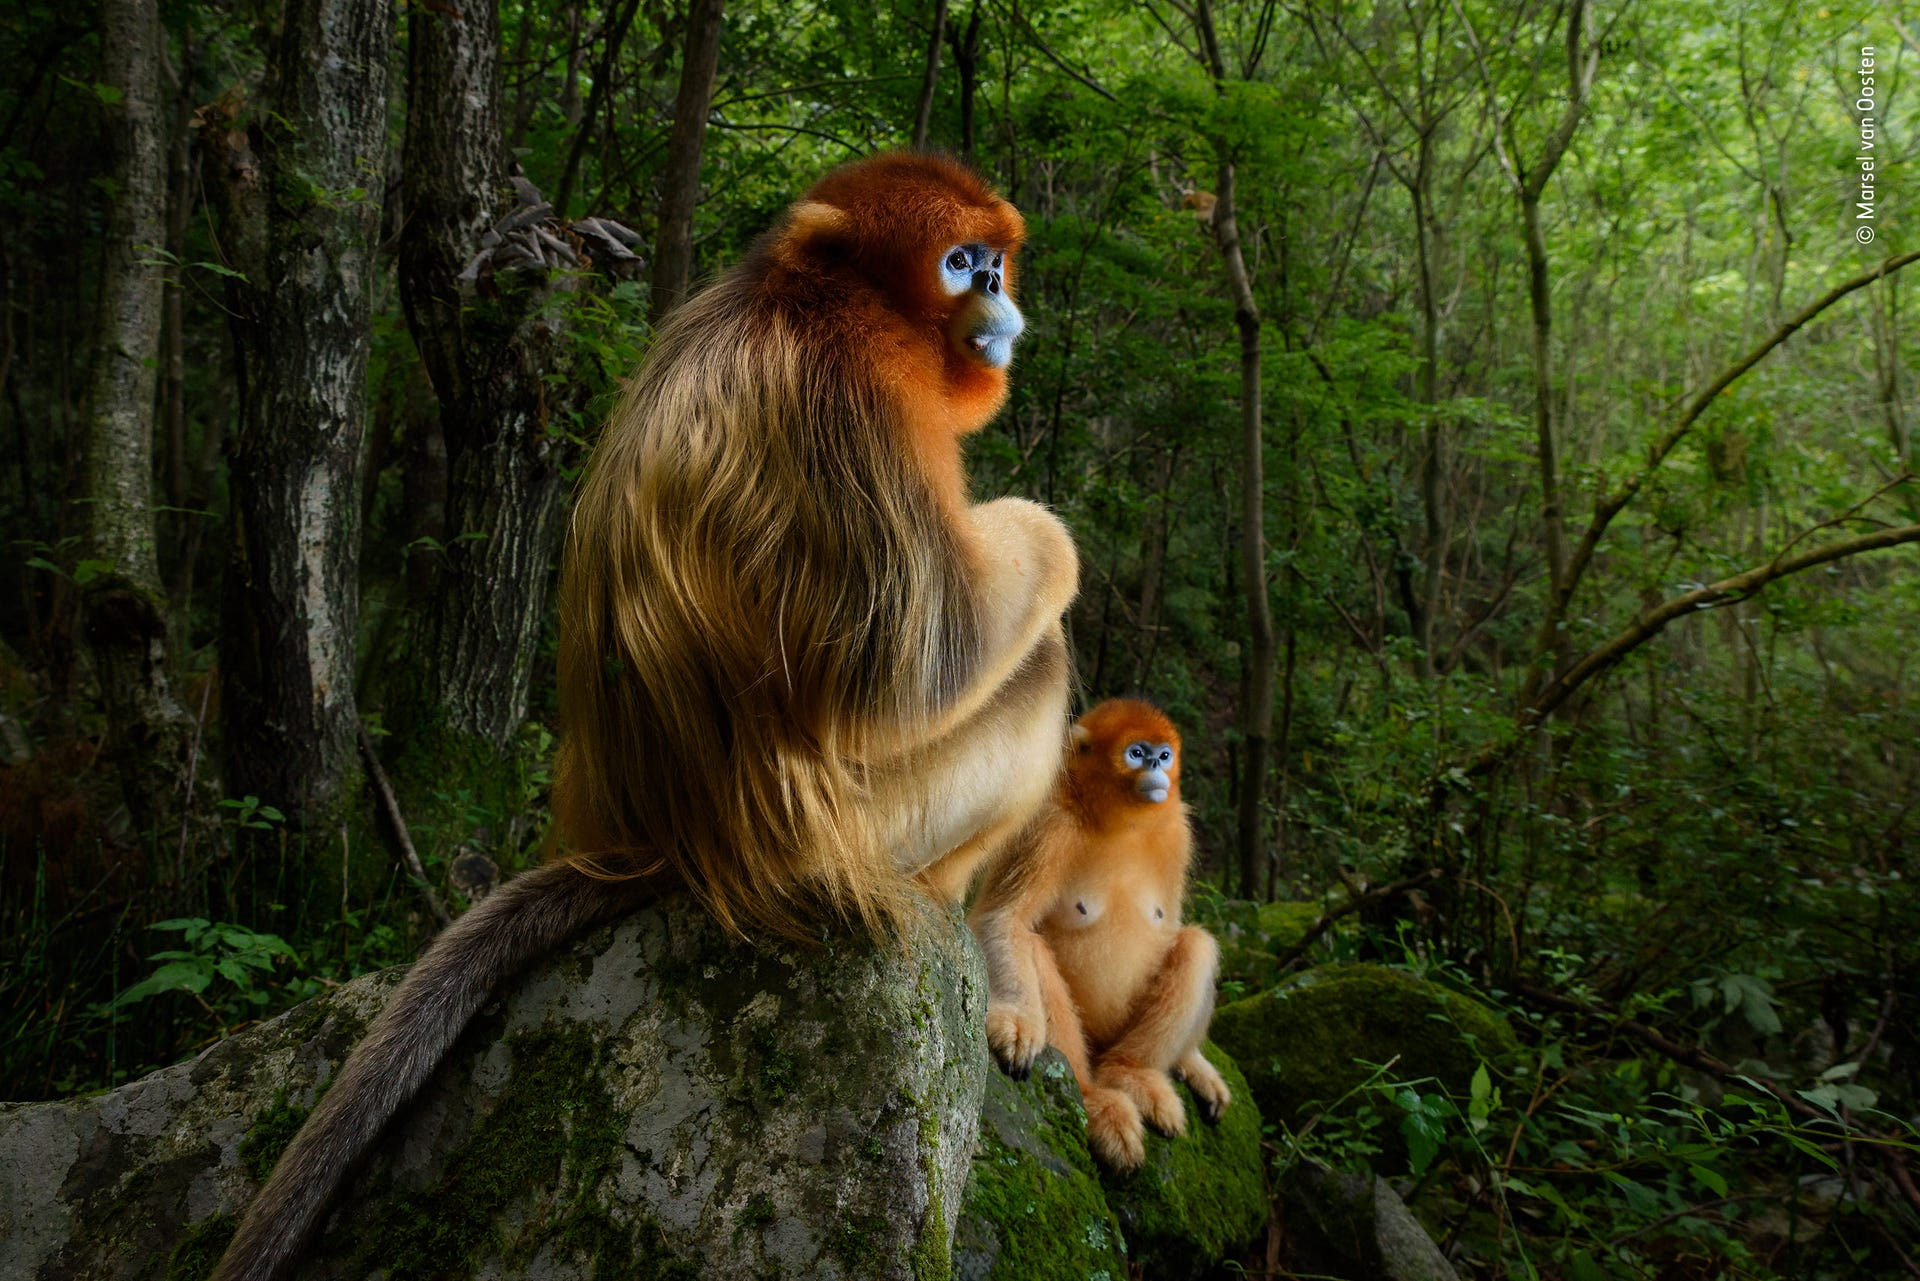 Winners of the Wildlife Photographer of the Year 2018 competition